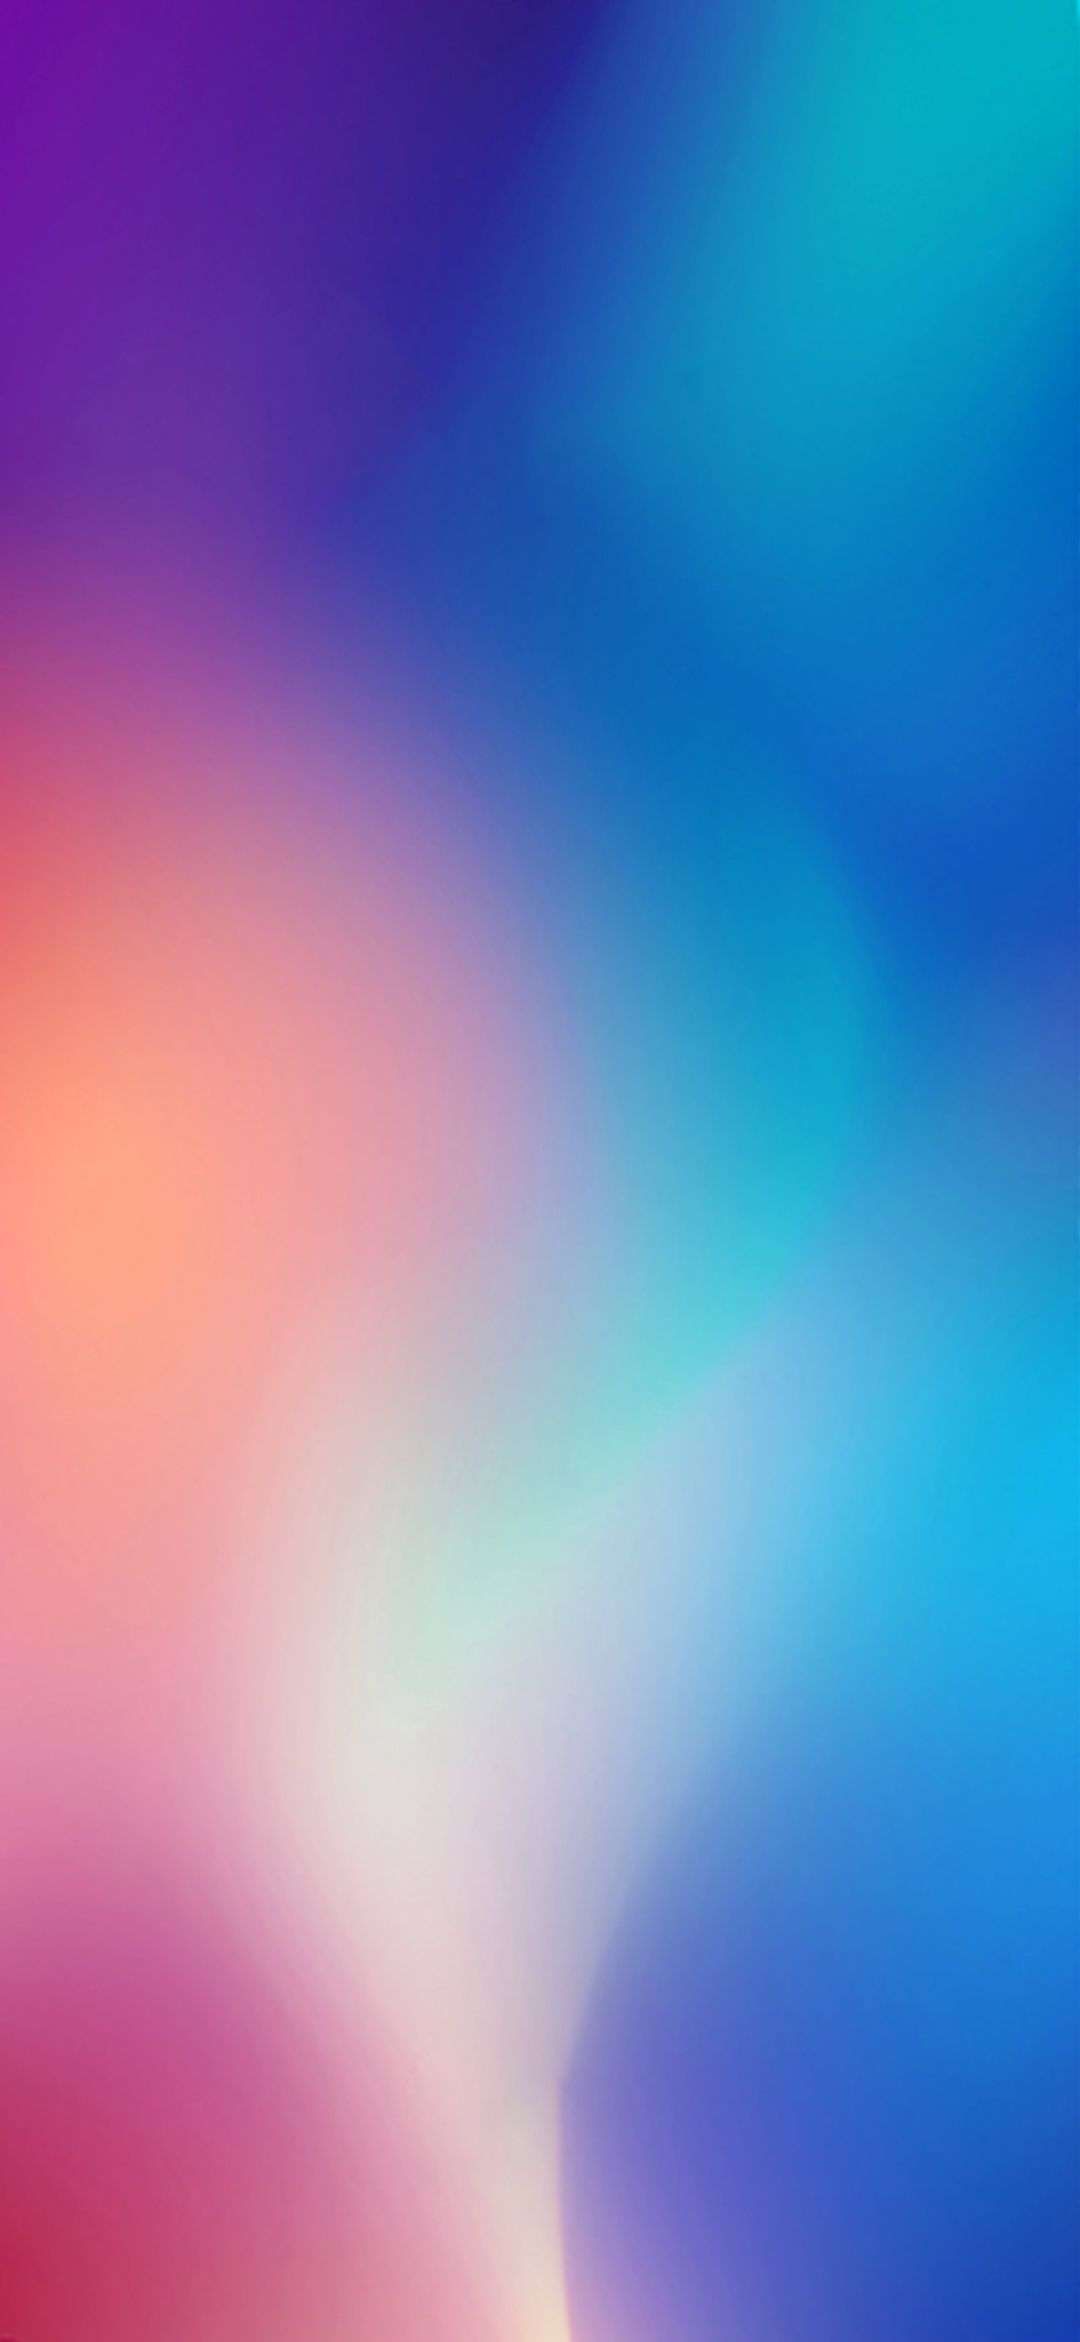 Download Xiaomi CC9 Stock Wallpapers - ZIP File Included